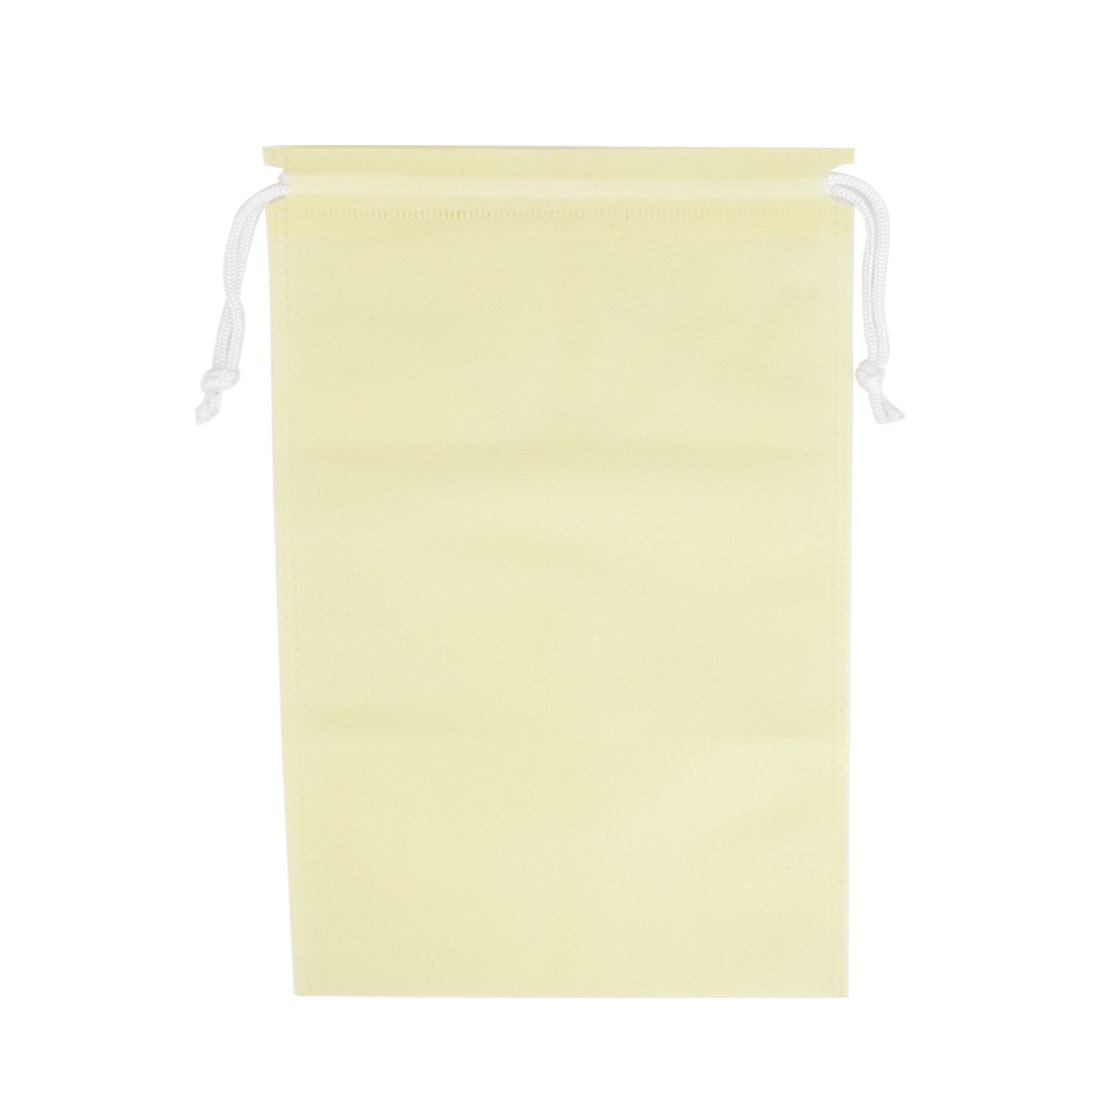 Household Clothes Dust Cover Storage Drawstring Bags 37 x 29cm Beige